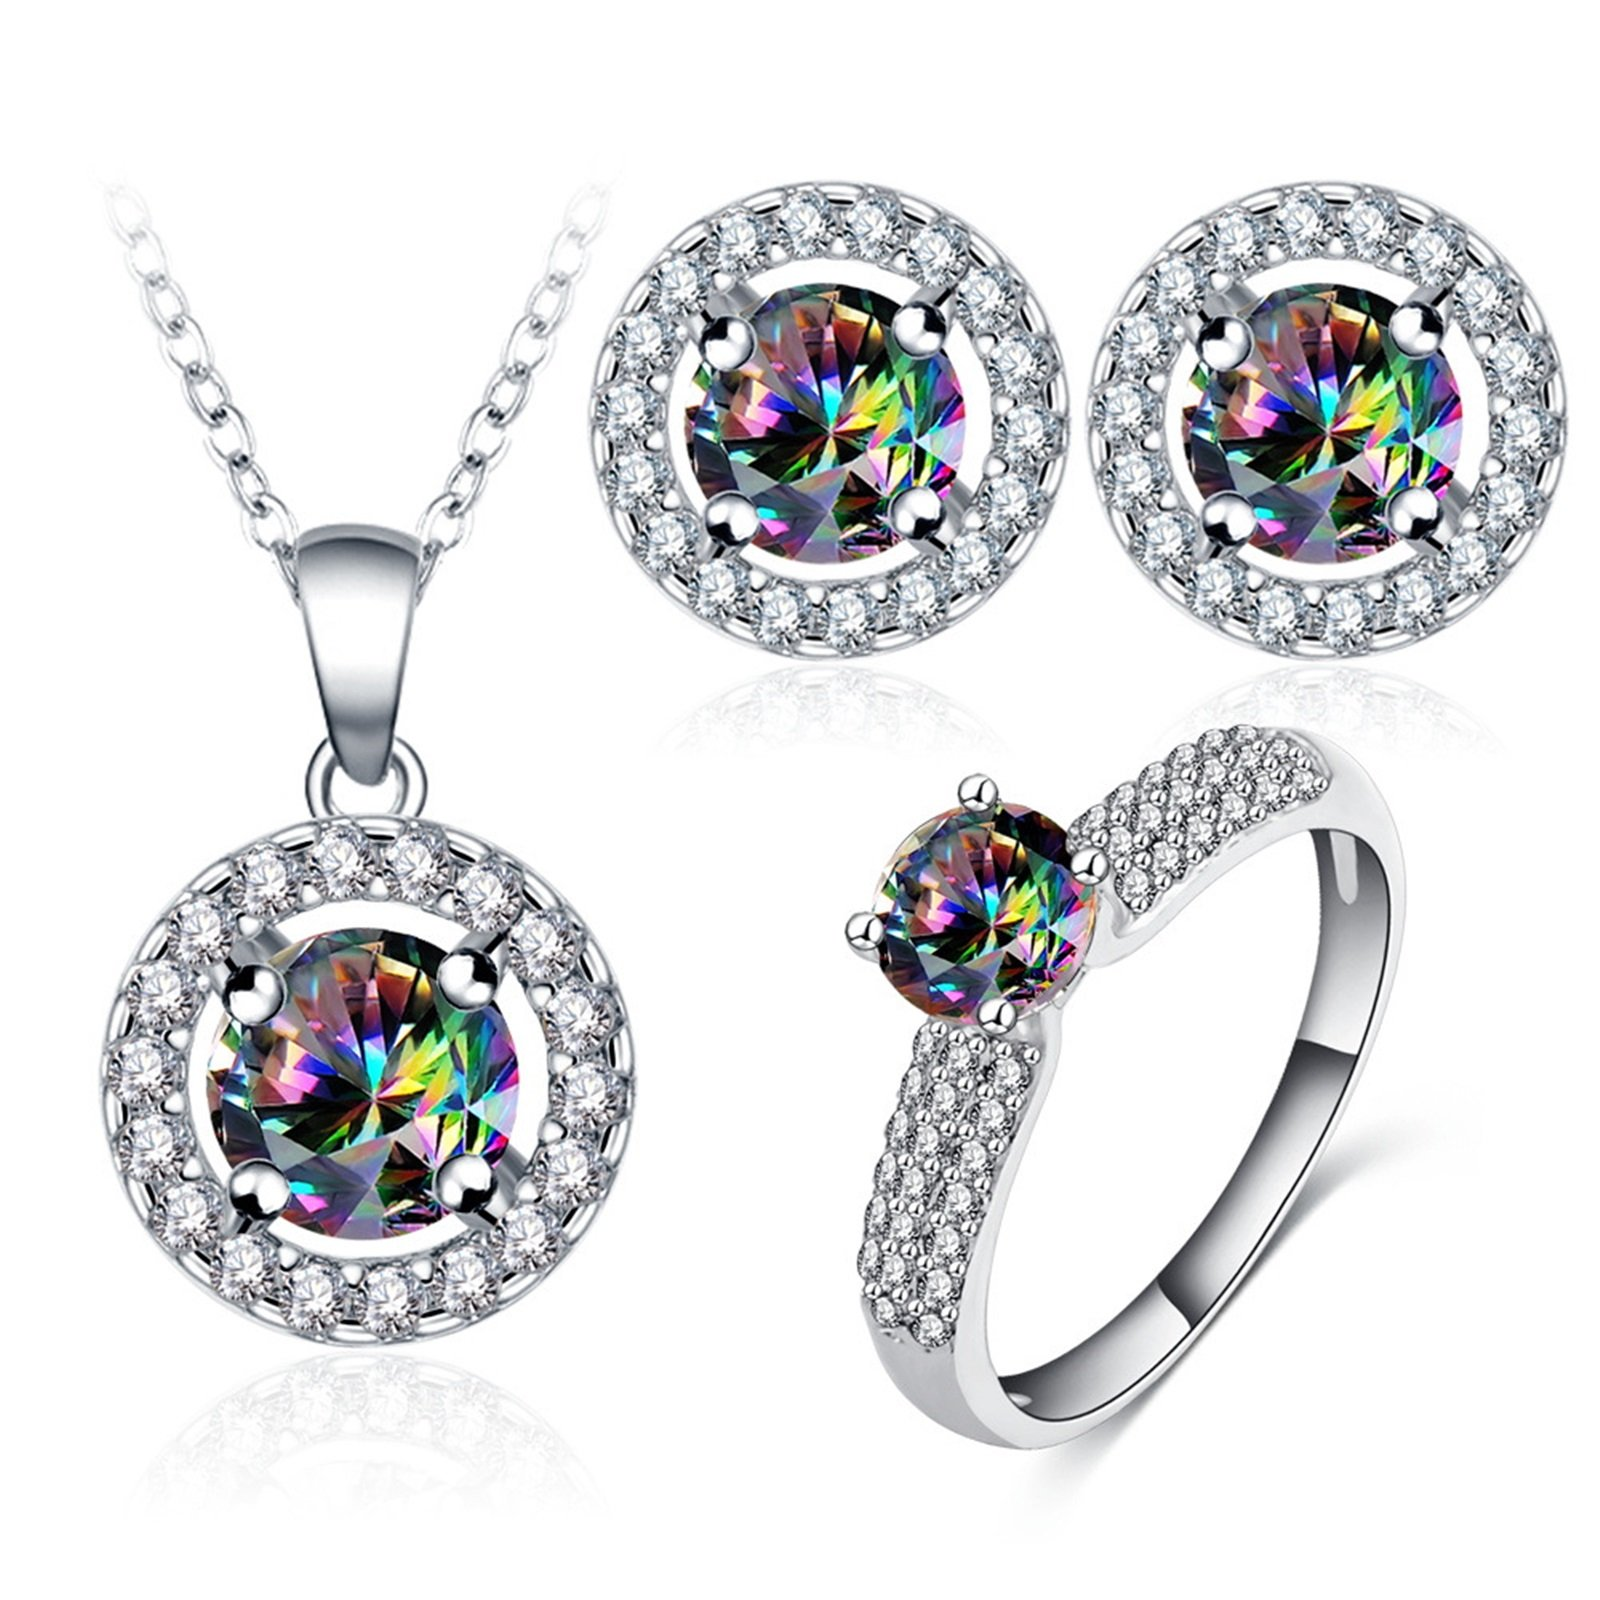 Daesar Wedding Ring and Earrings and Necklace Jewelry Set for Women Colorful Cubic Zirconia Ring Size 7